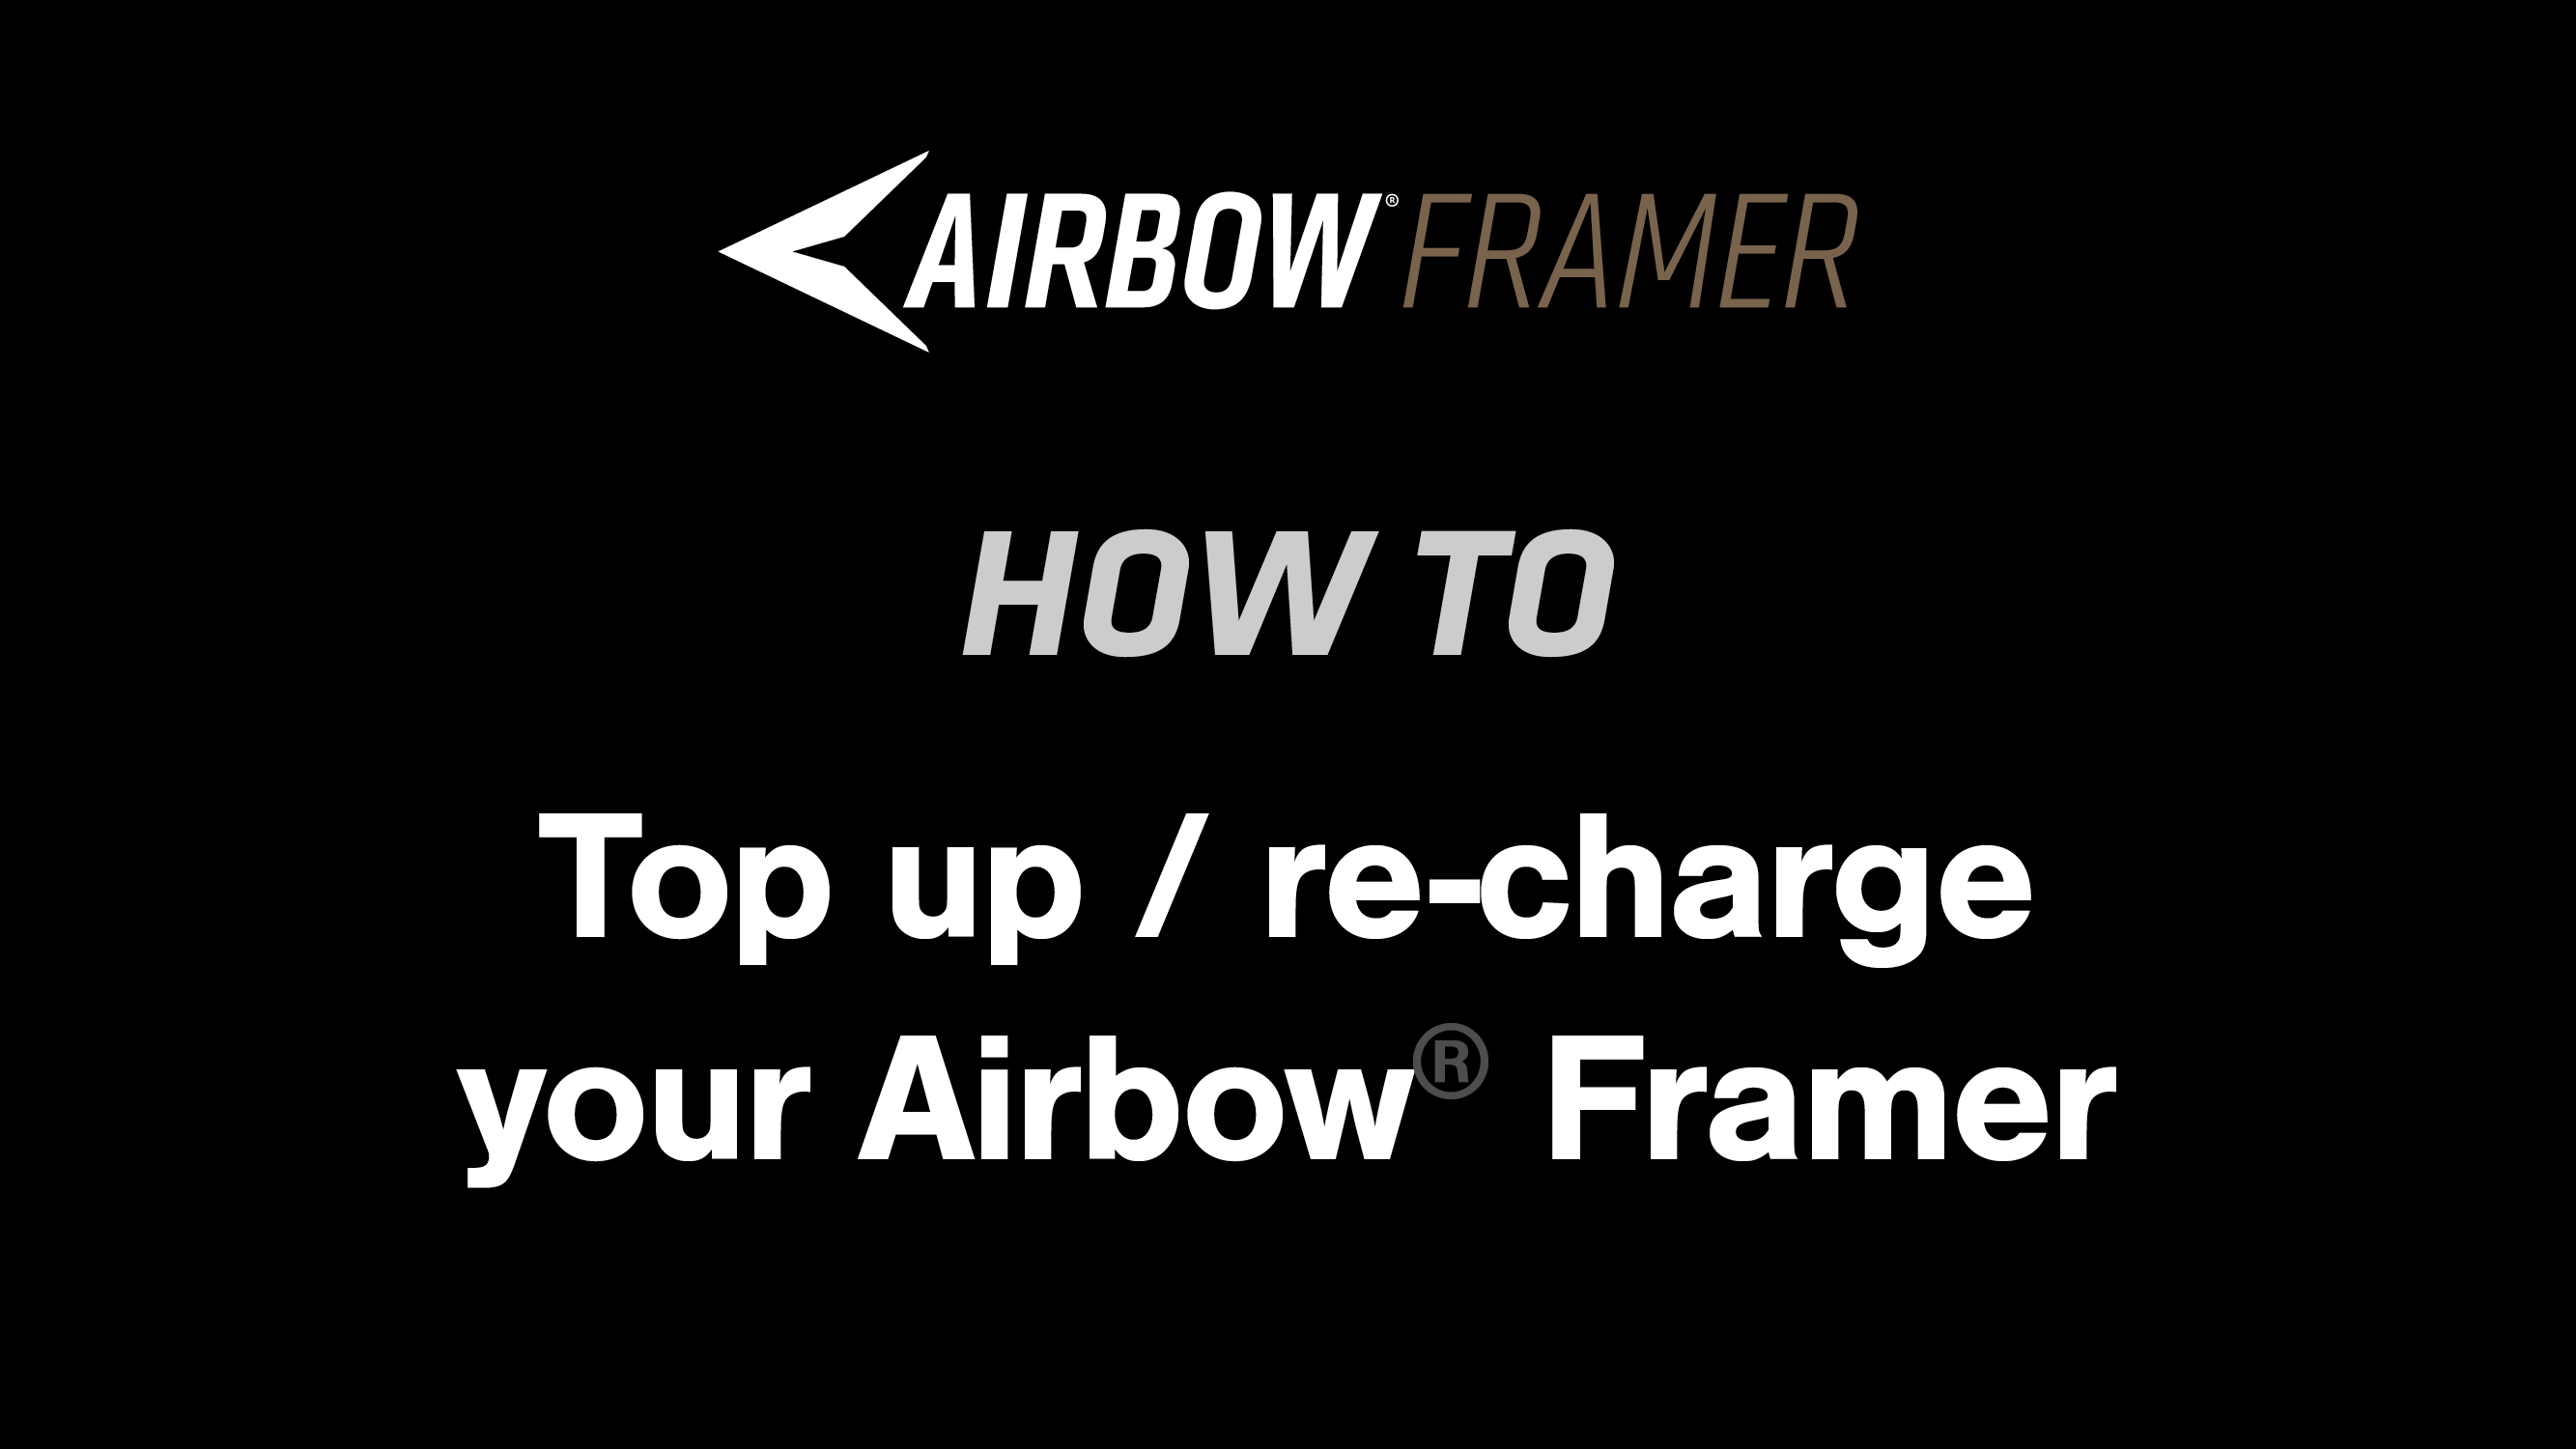 How to: Fill your Airbow Framer